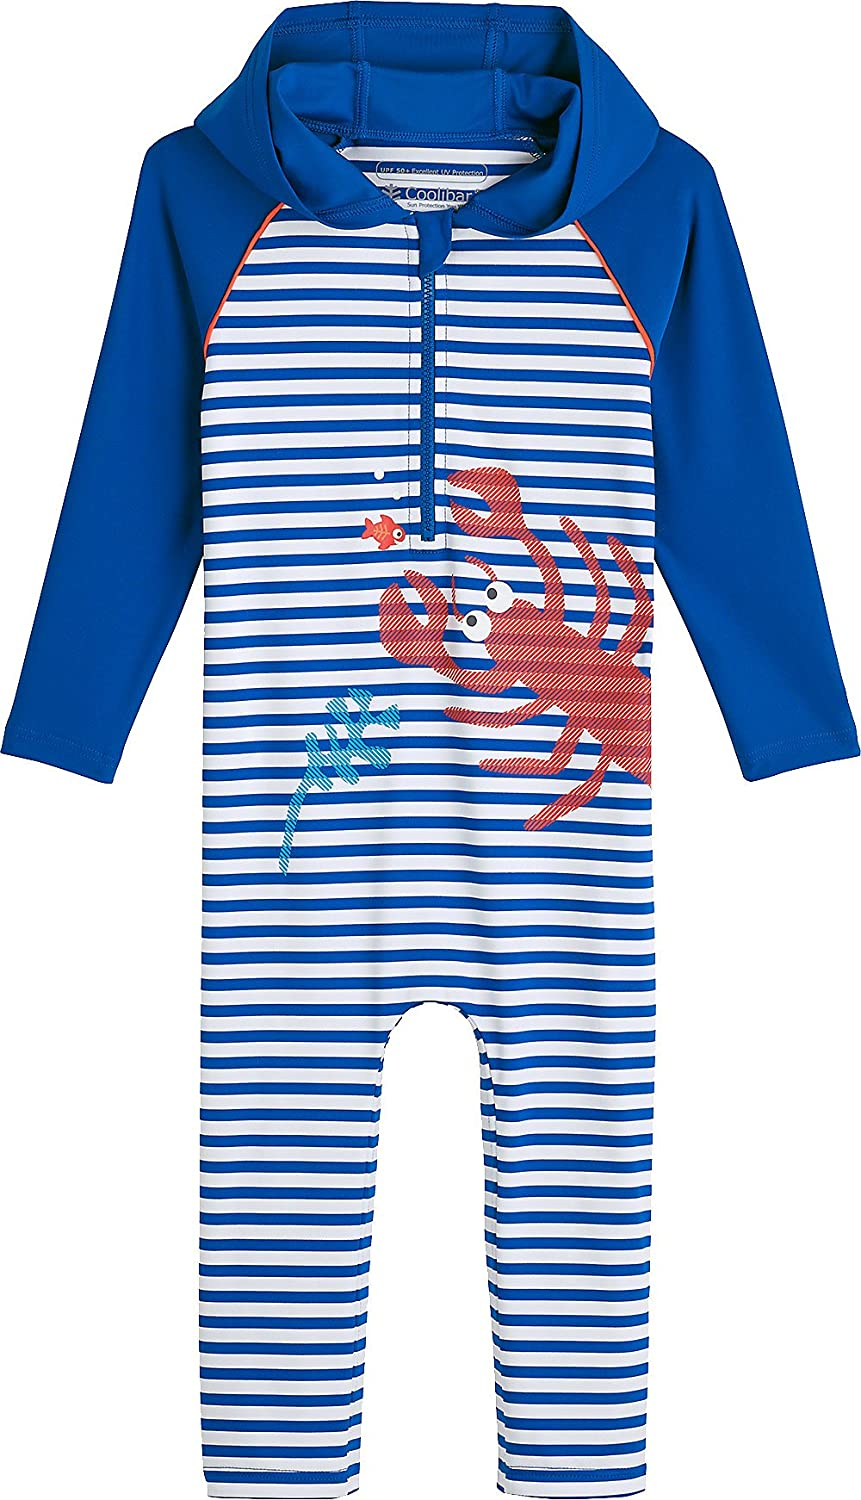 Coolibar UPF 50+ Baby Hooded One-Piece Swimsuit - Sun Protective